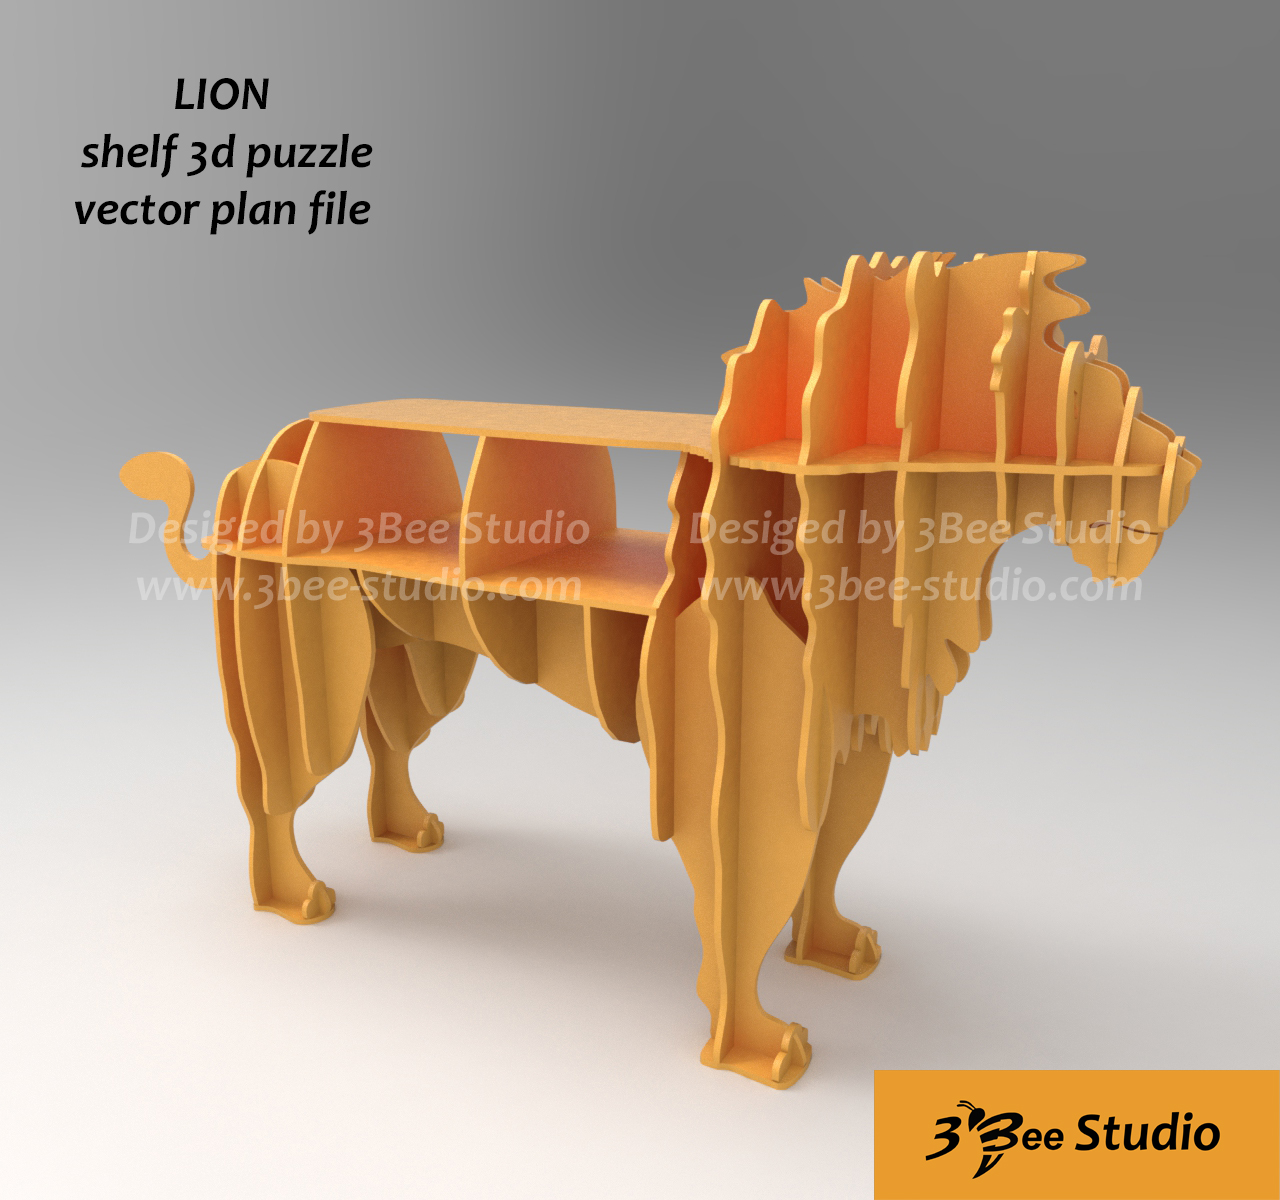 Lion shelf 3d puzzle plan vector file ...